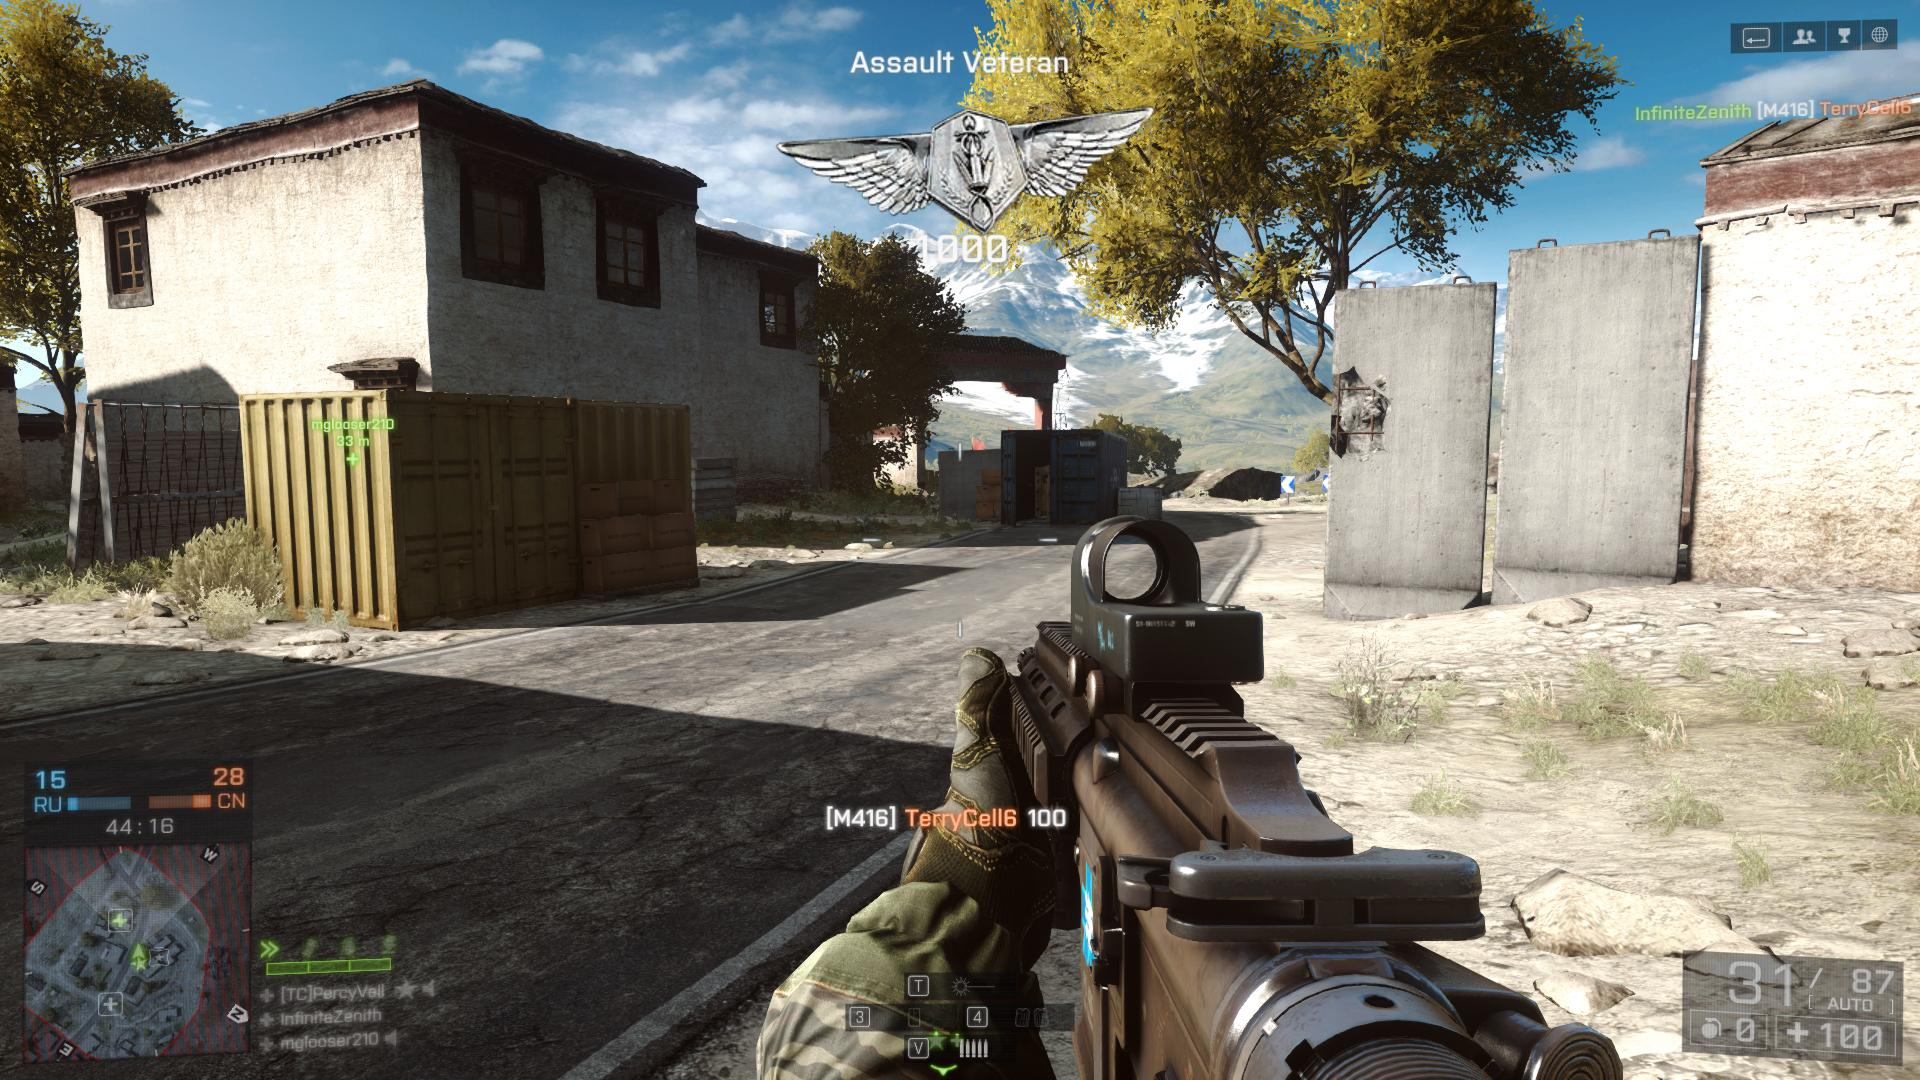 Three years since I came back: A retrospective on Battlefield 4